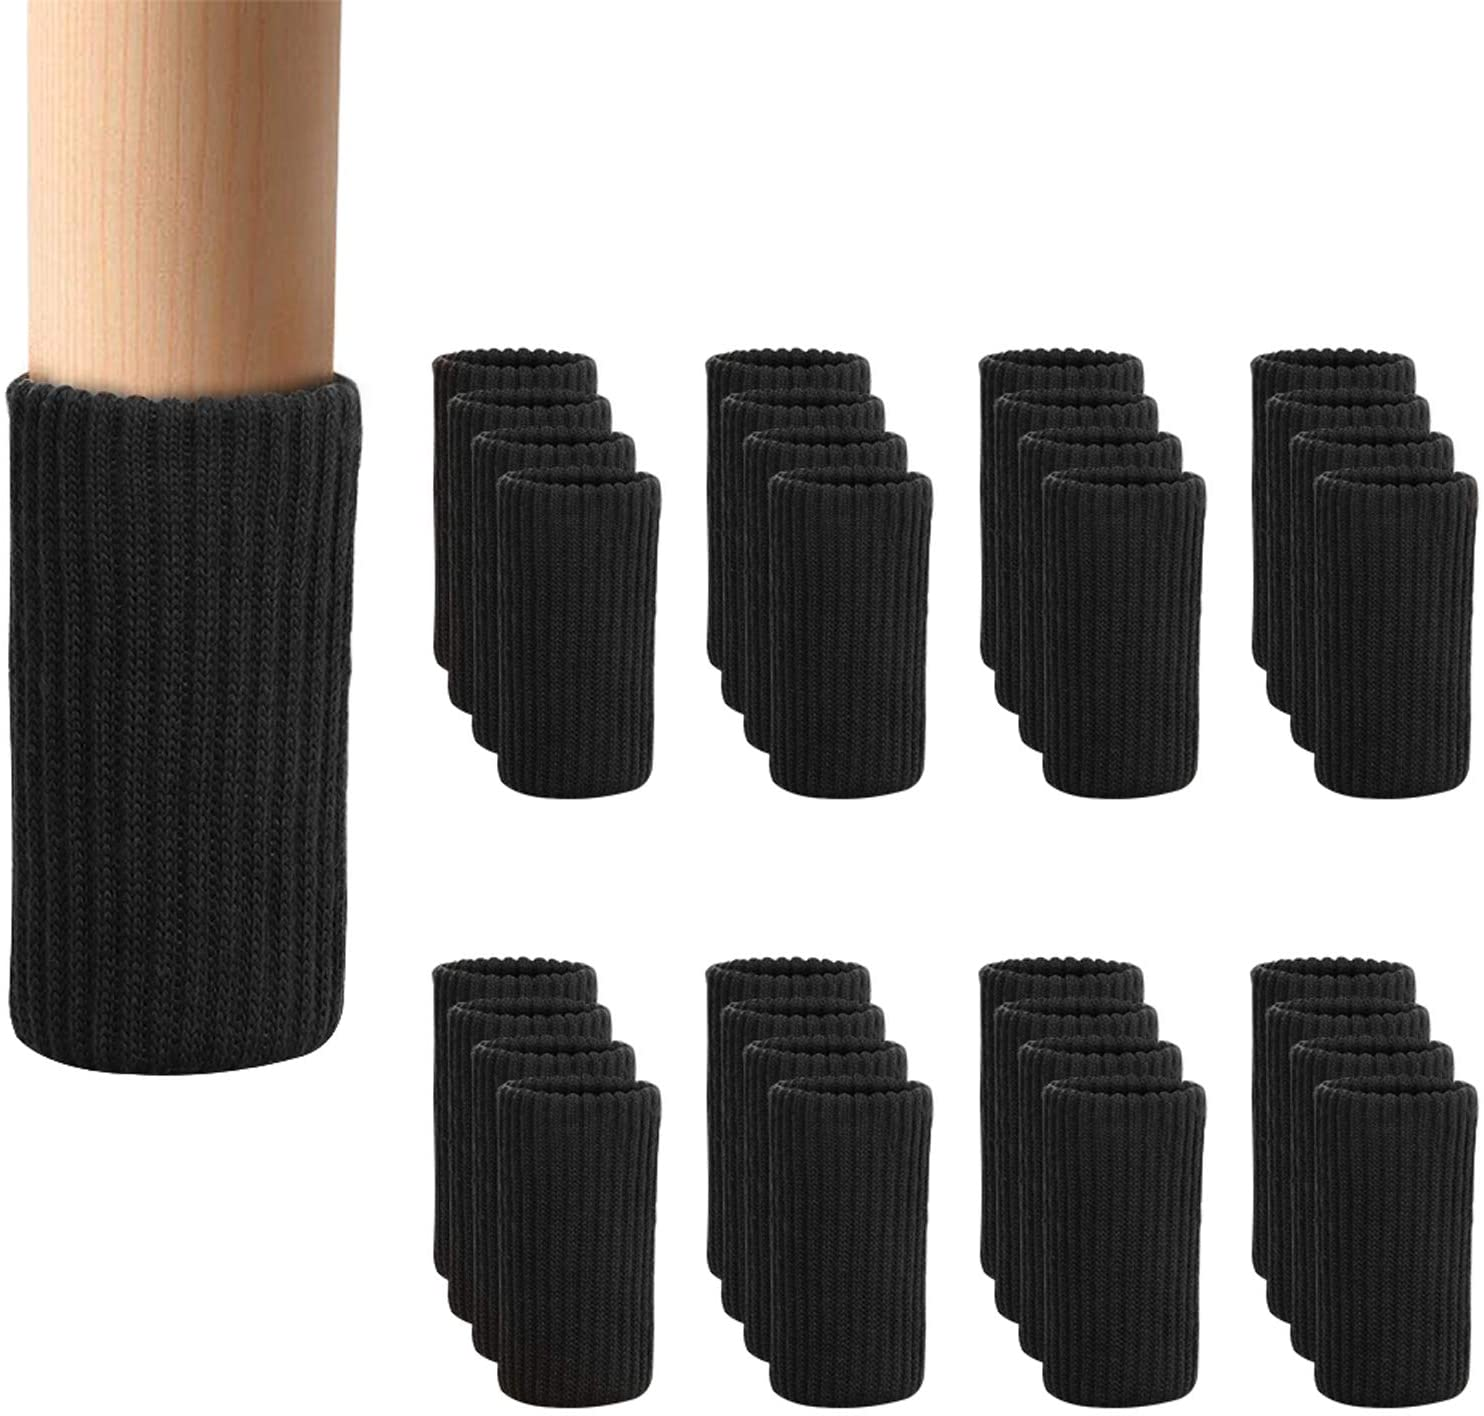 32 PCs Black Furniture Leg Socks - Knitted Chair Leg Floor Protectors for Moving Easily and Reduce Noise, Double Thickness High Elastic Furniture Booties Covers Furniture Caps Set